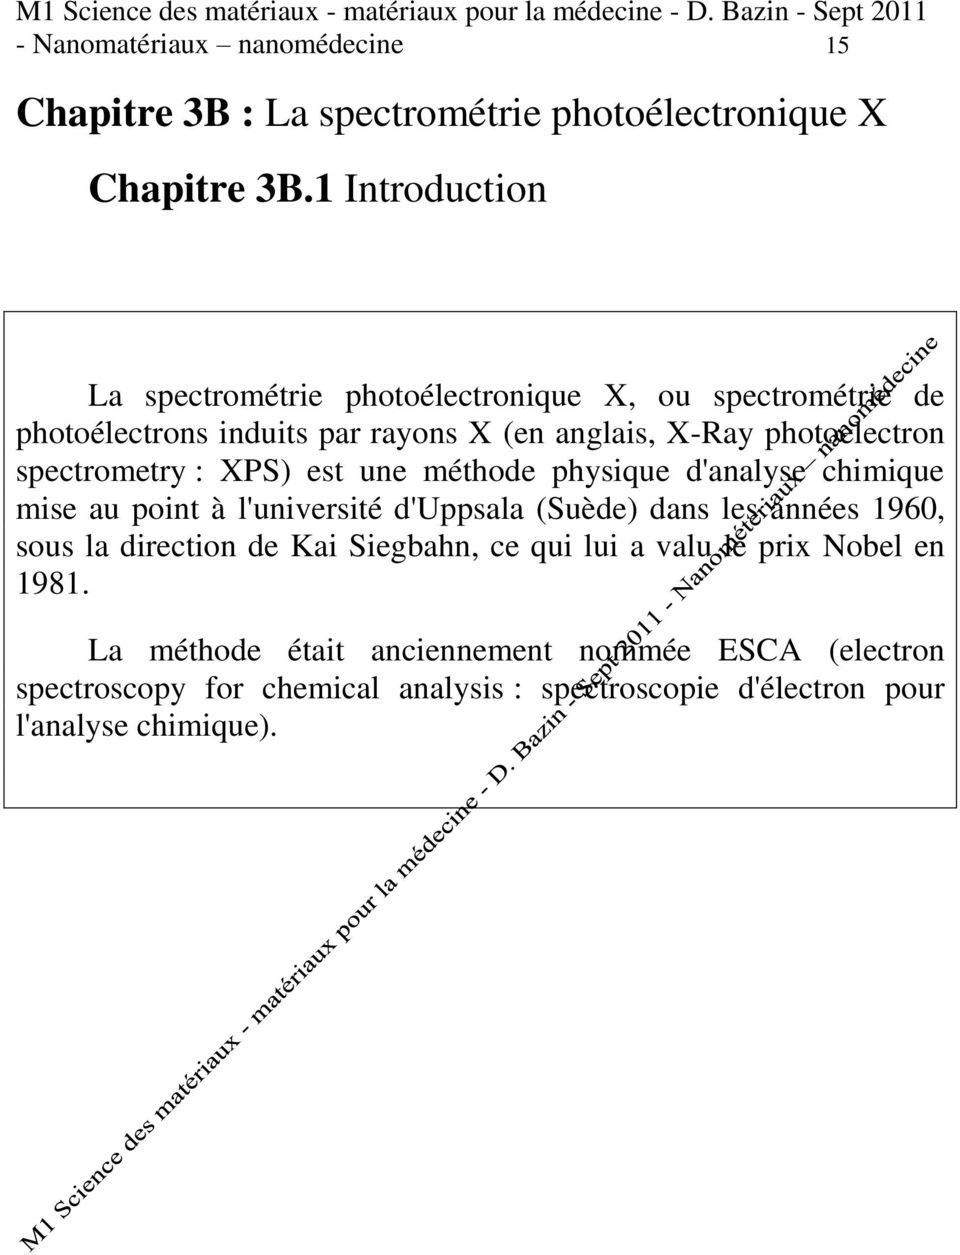 1 Introduction La spectrométrie photoélectronique X, ou spectrométrie de photoélectrons induits par rayons X (en anglais, X-Ray photoelectron spectrometry : XPS)